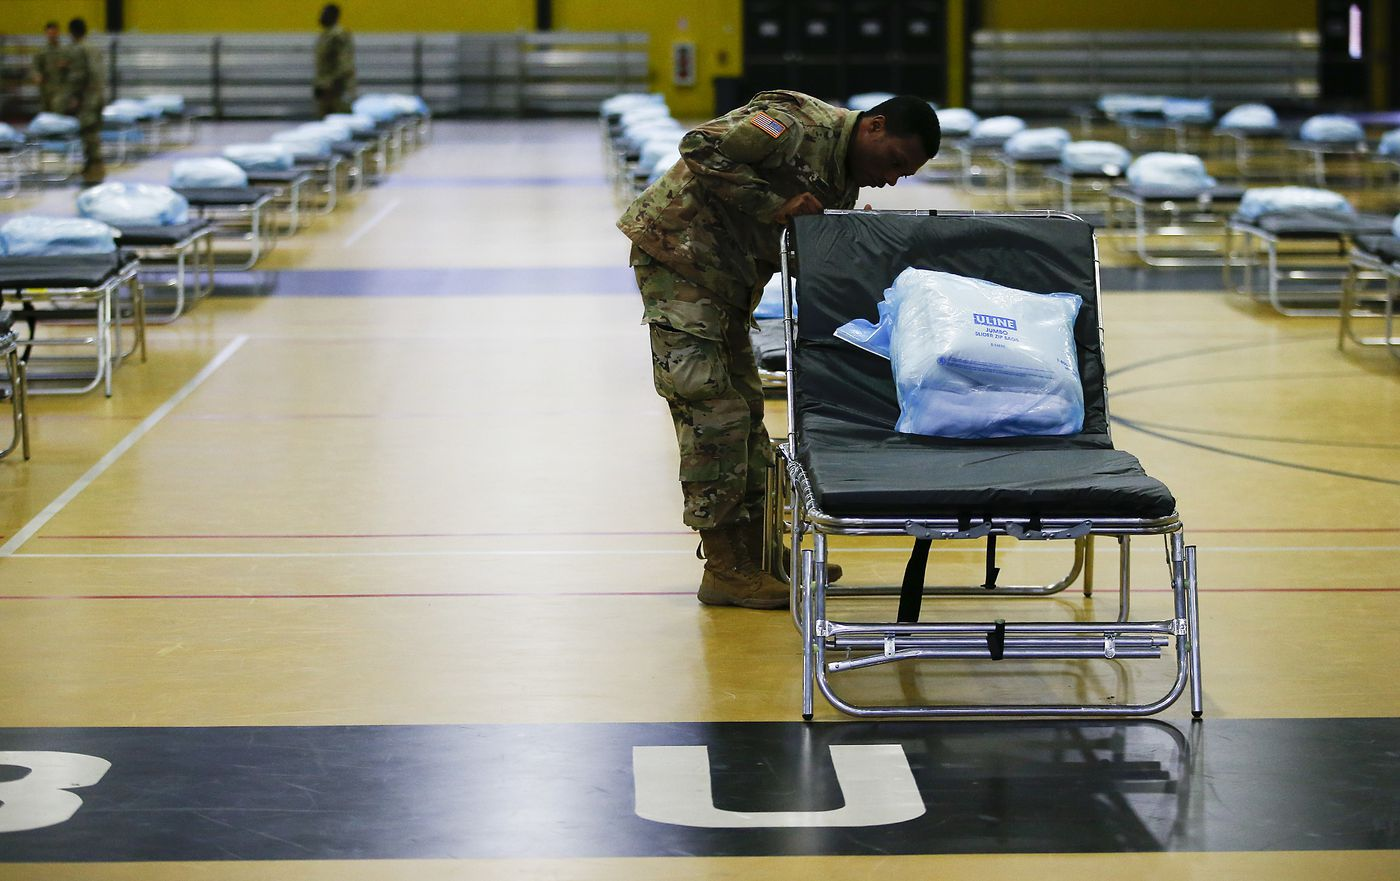 a member of the national guard sets up a hopital bed in a gymnasium